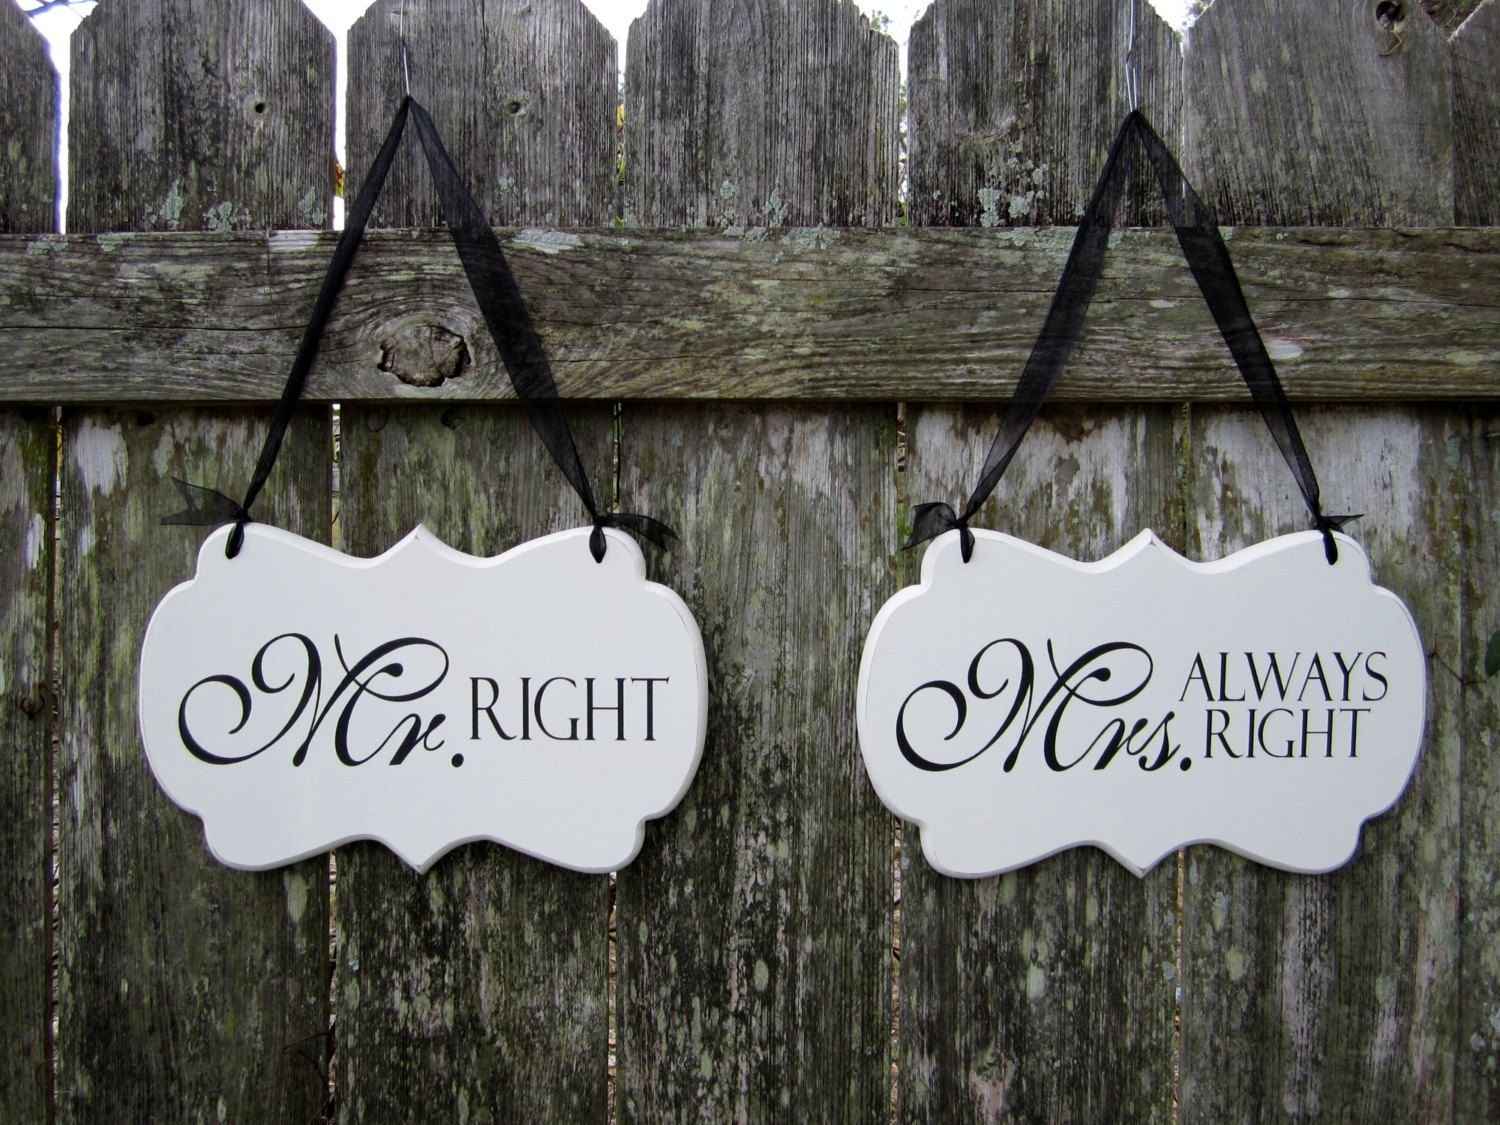 Wedding signs hand painted wooden shabby chic decoration signs mr wedding signs hand painted wooden shabby chic decoration signs mr right junglespirit Choice Image